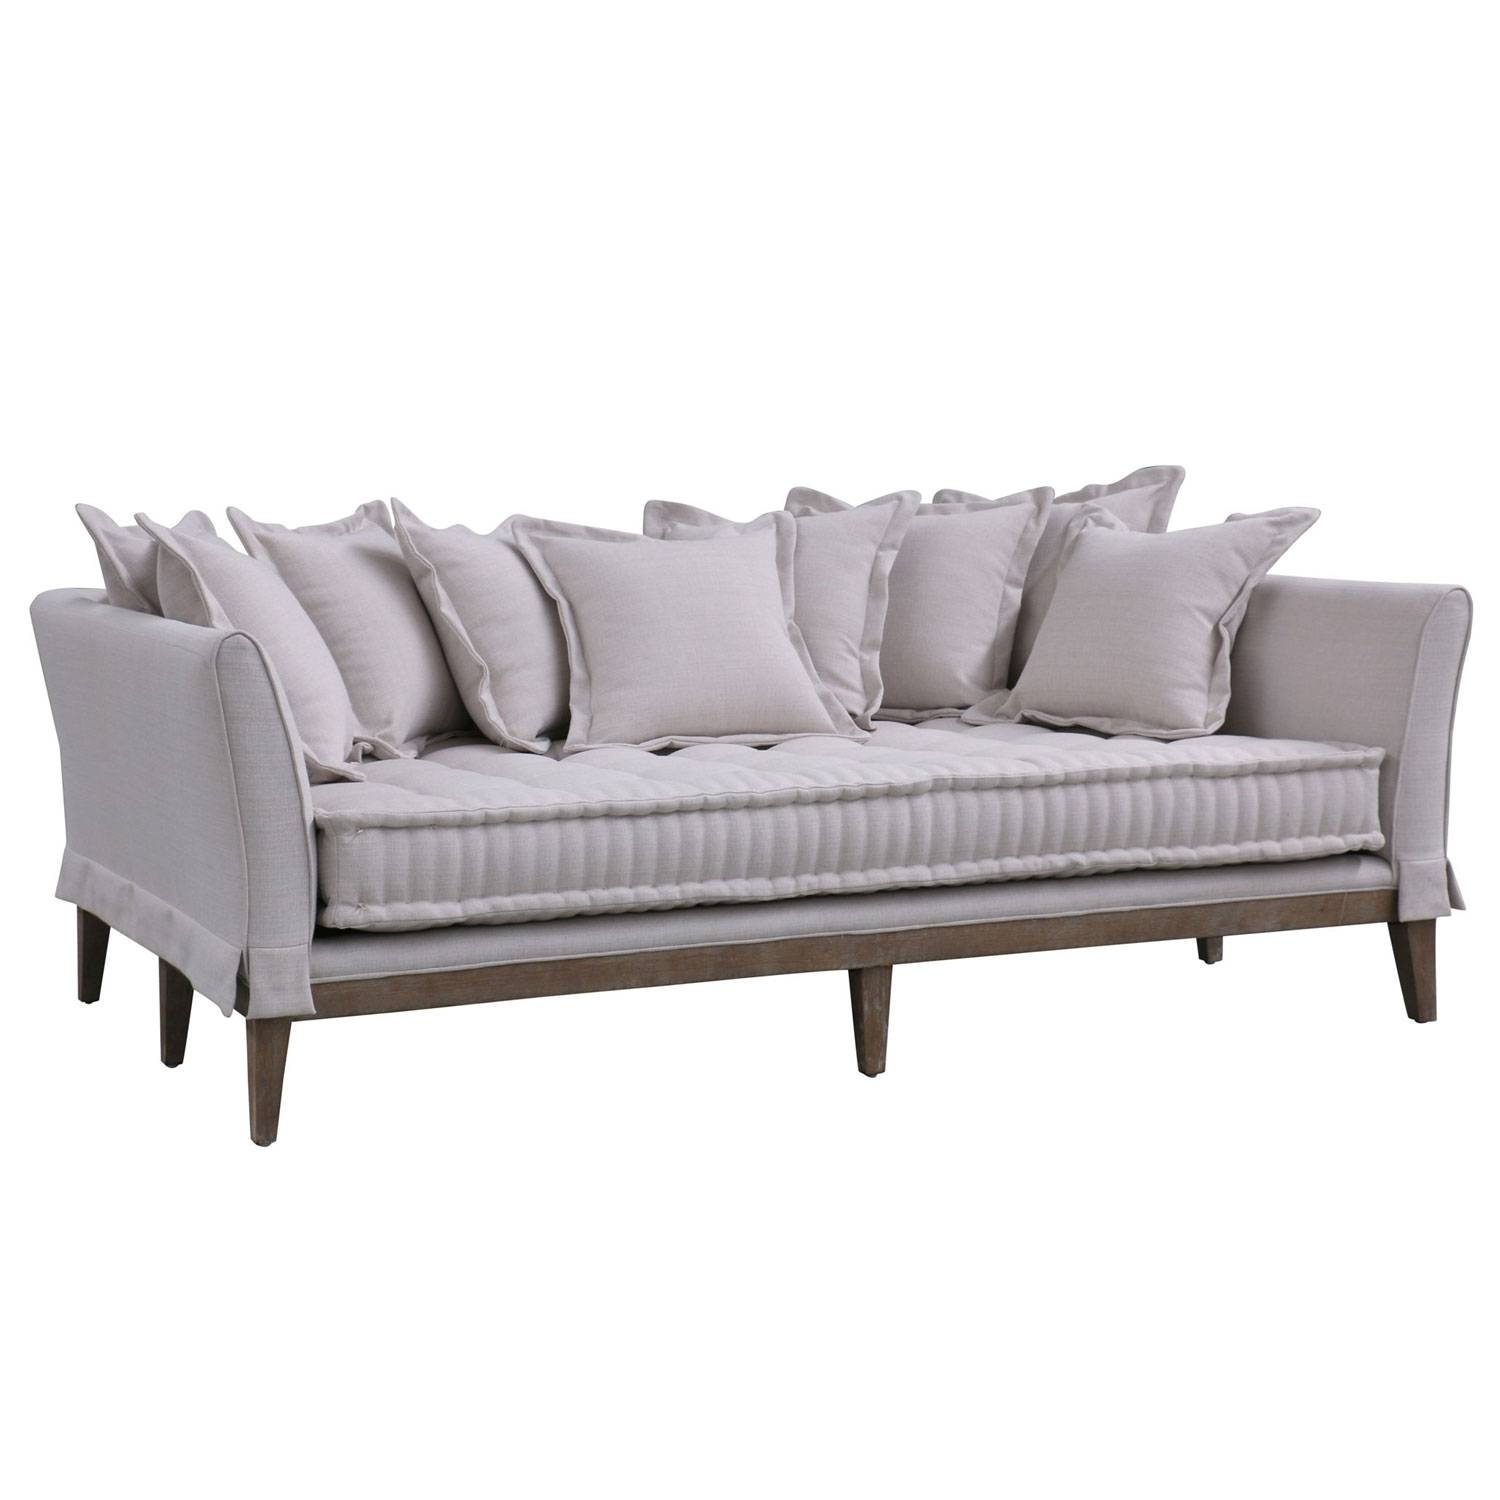 Day Beds - Traditional Daybeds & Trundle Daybeds - Layla Grayce pertaining to Sofa Day Beds (Image 12 of 30)